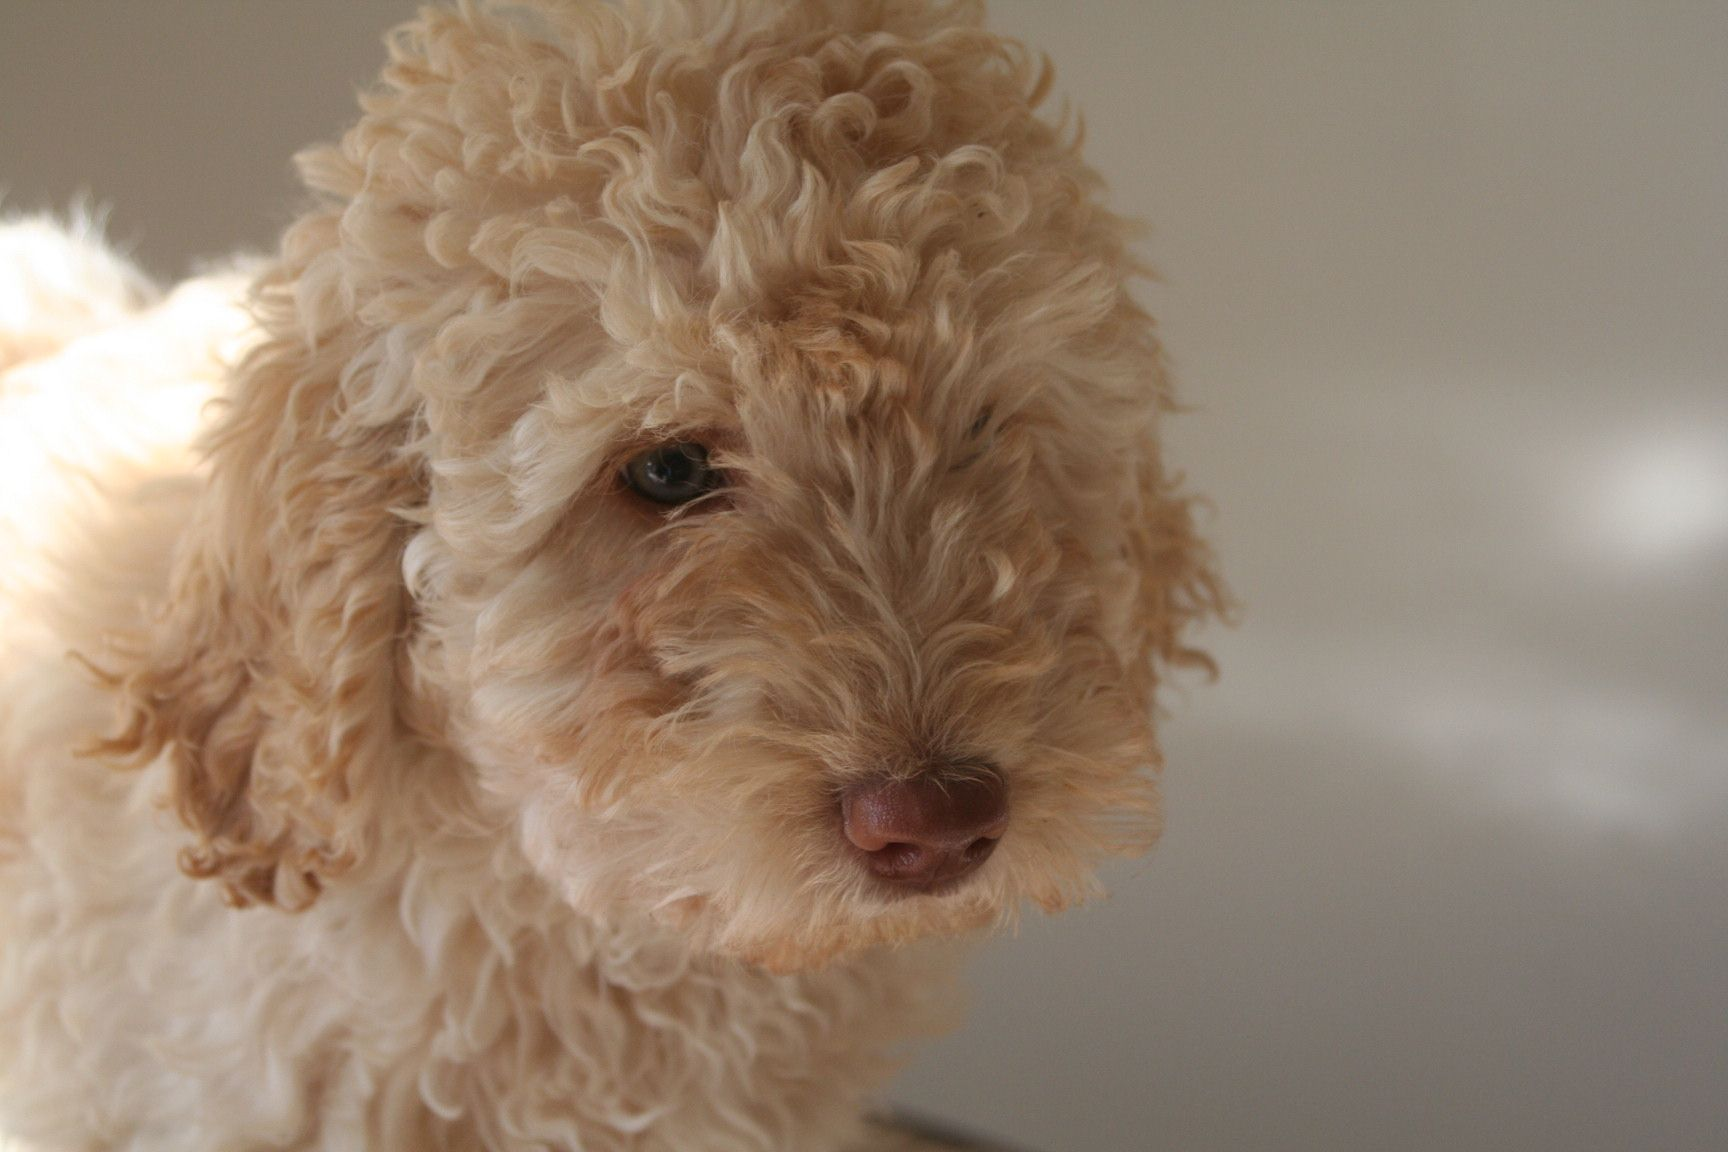 Labradoodle Puppy Picture In Arizona Labradoodle puppy